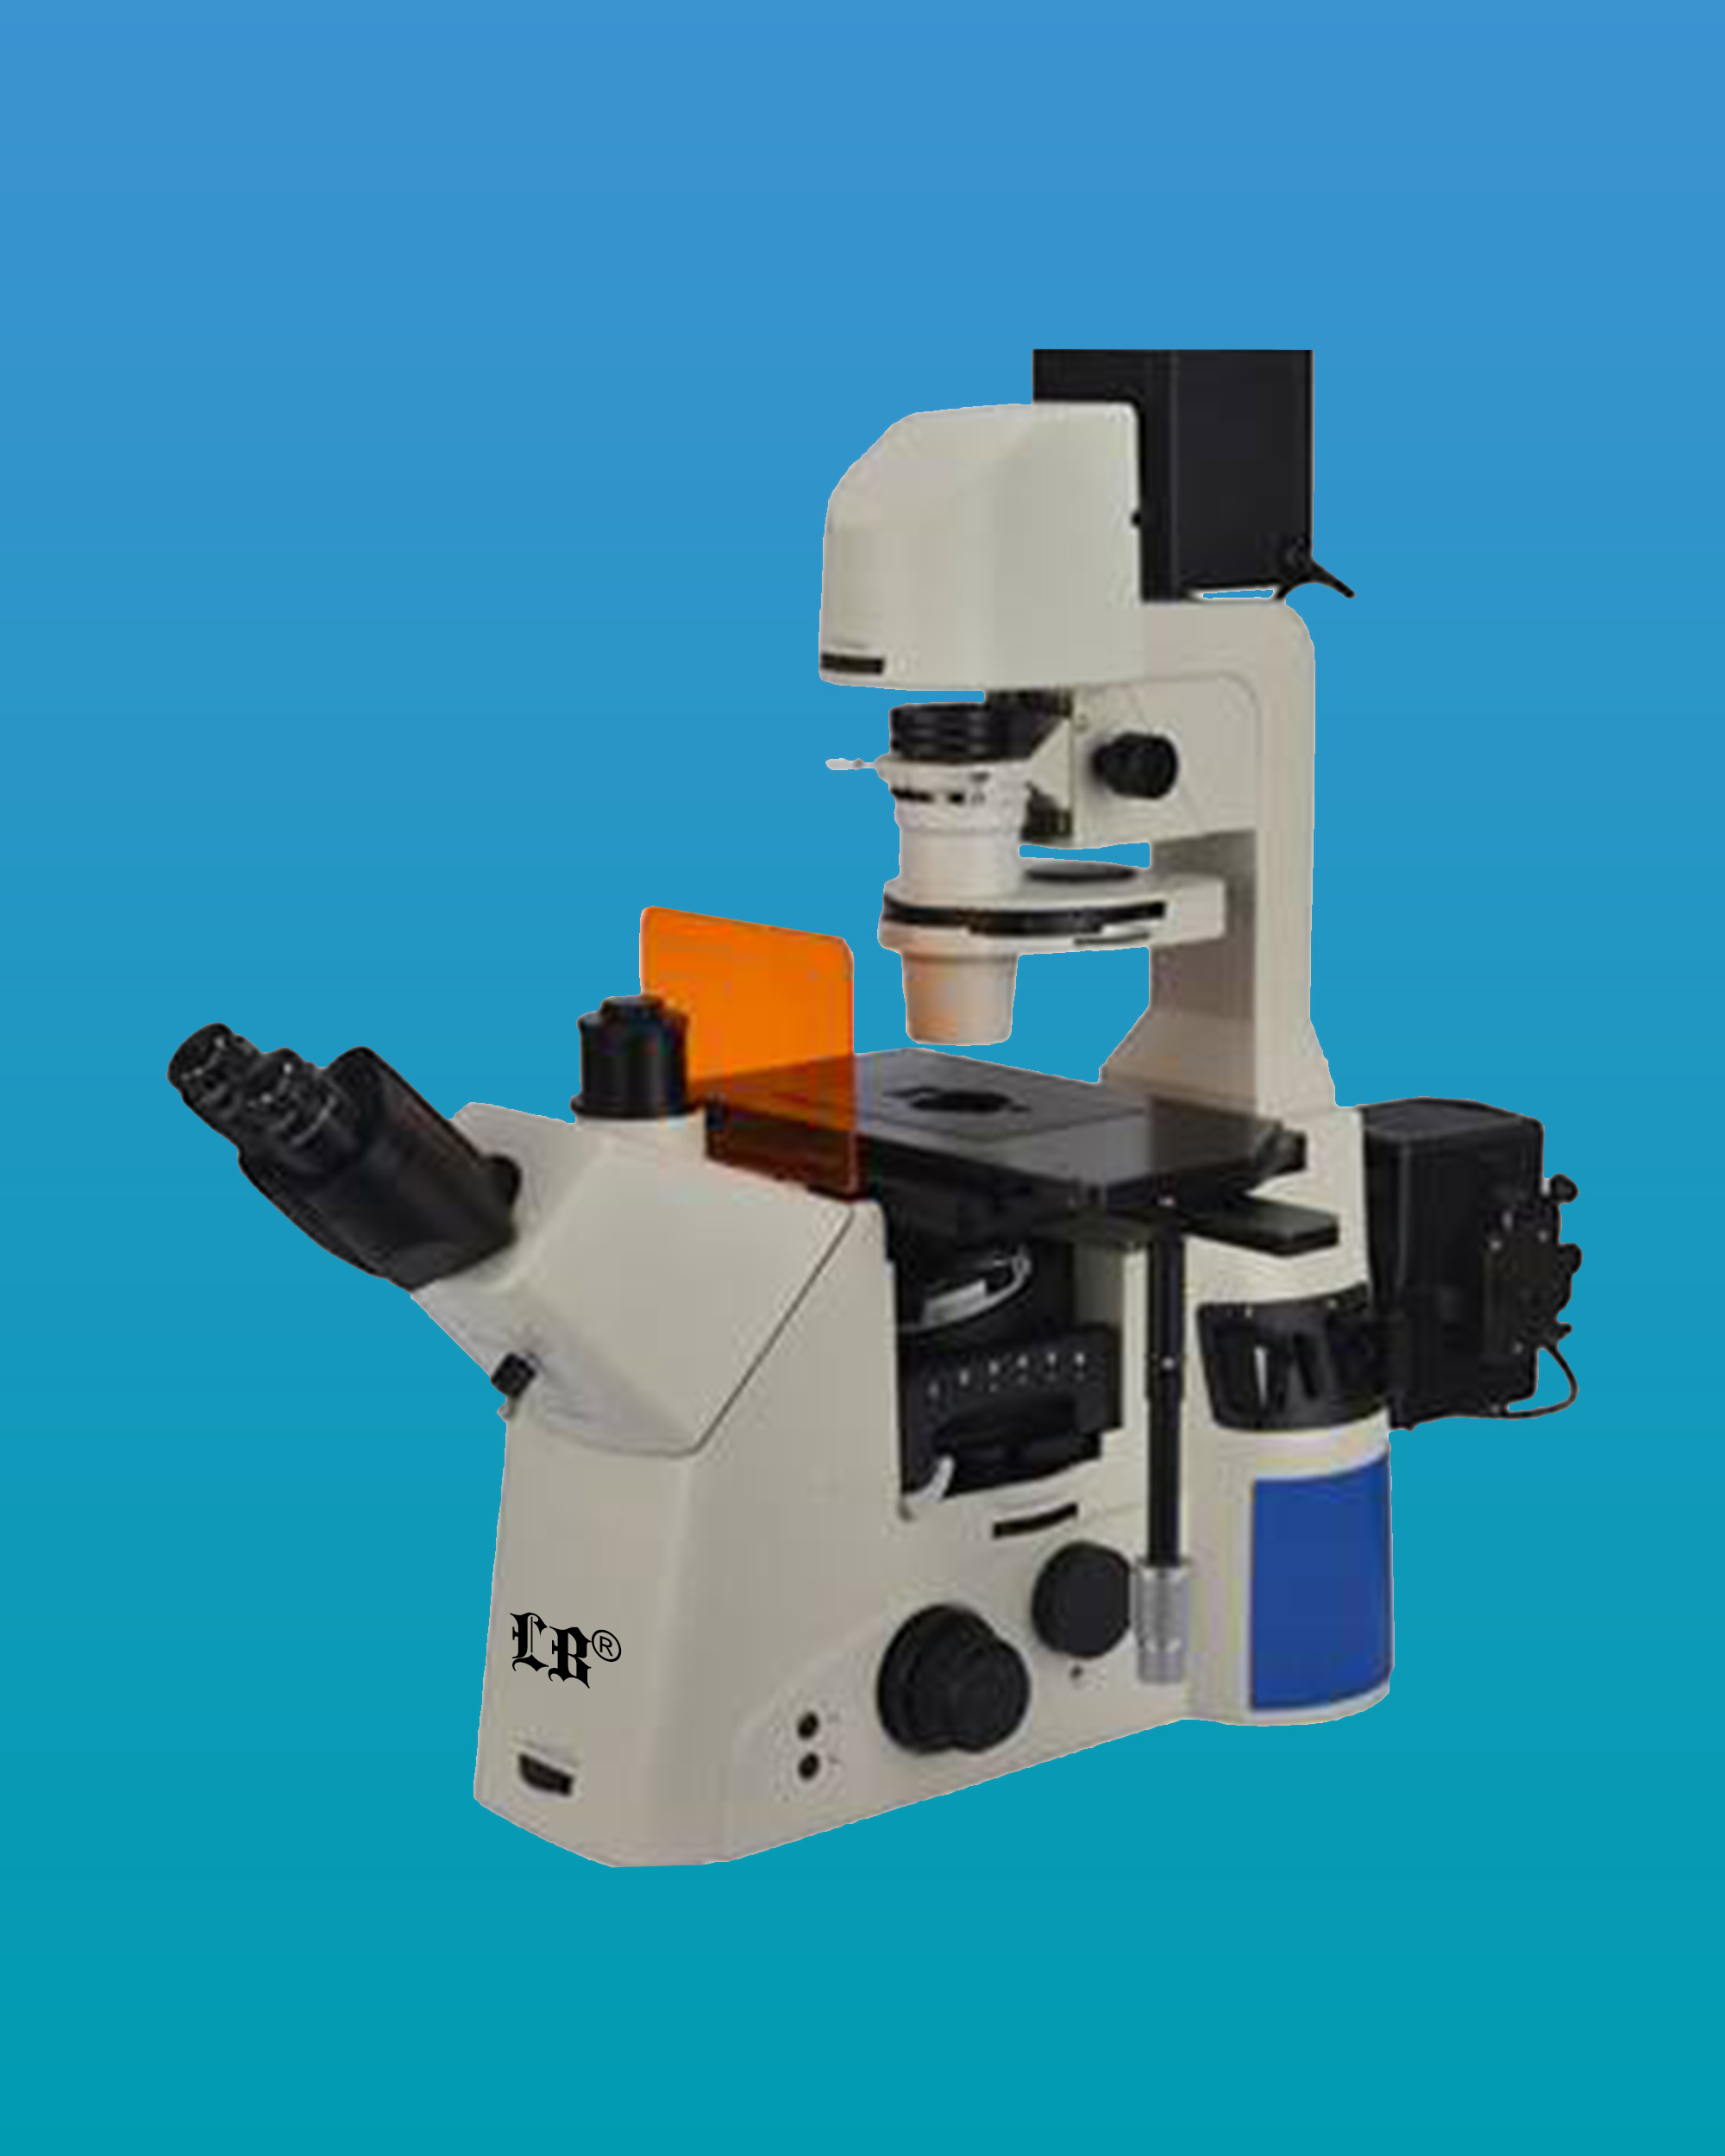 [LB-295] Research Inverted Microscope